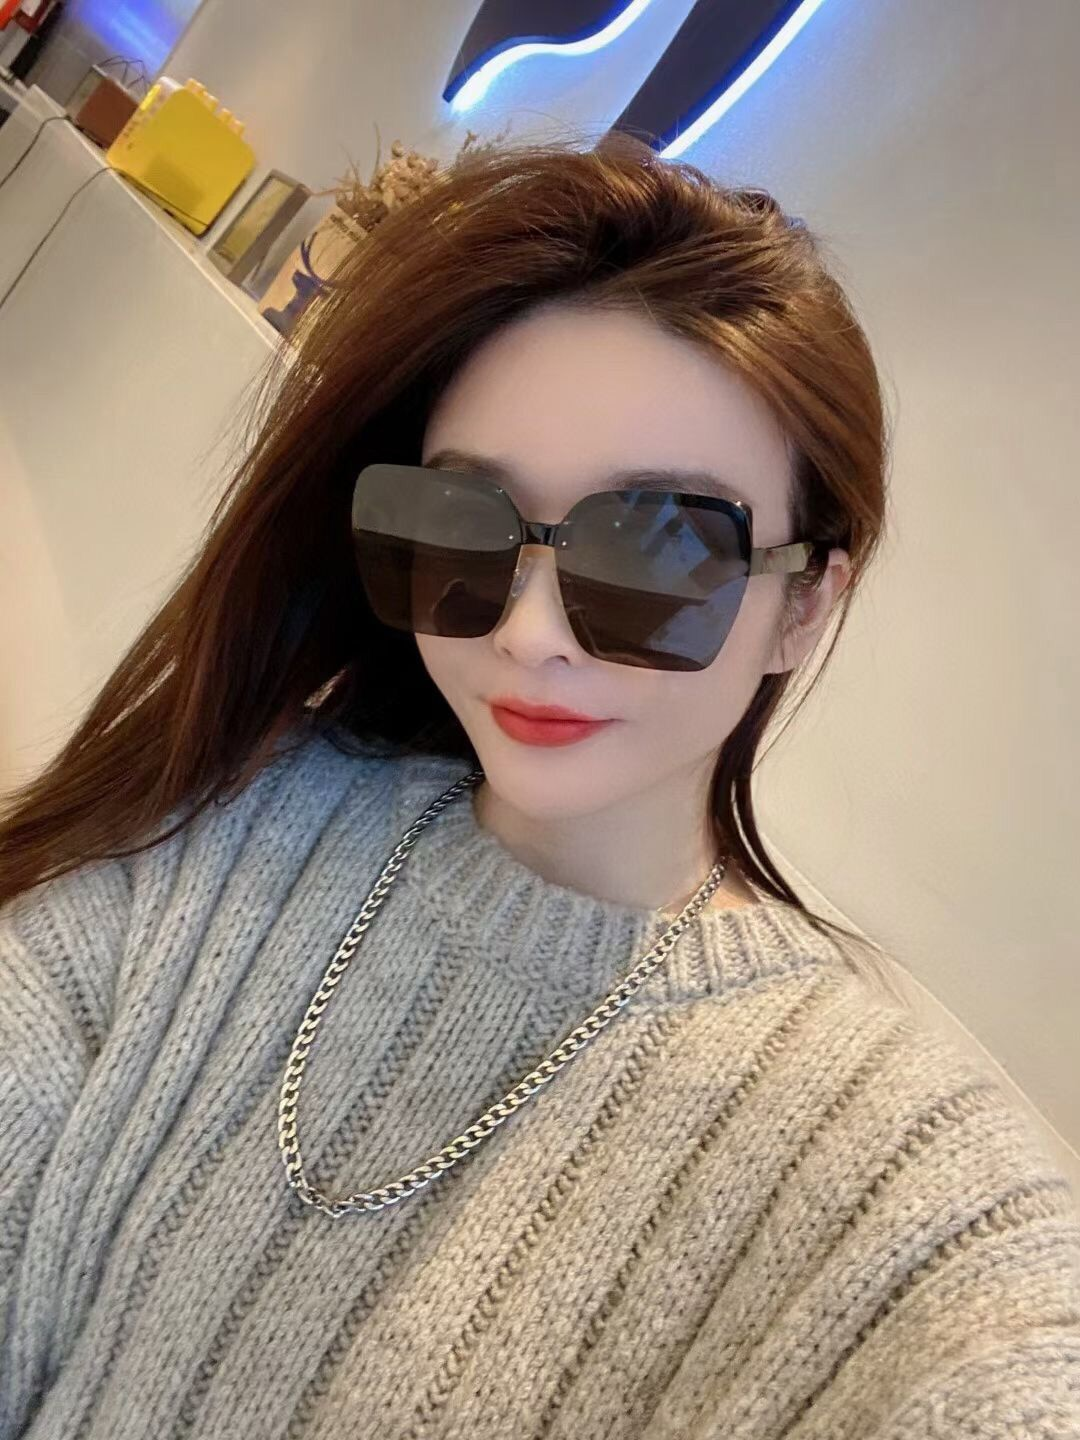 With Box New Designer Luxury Brand Women Sunglasses Men Fashion Square Glasses Frame Vintage Retro G